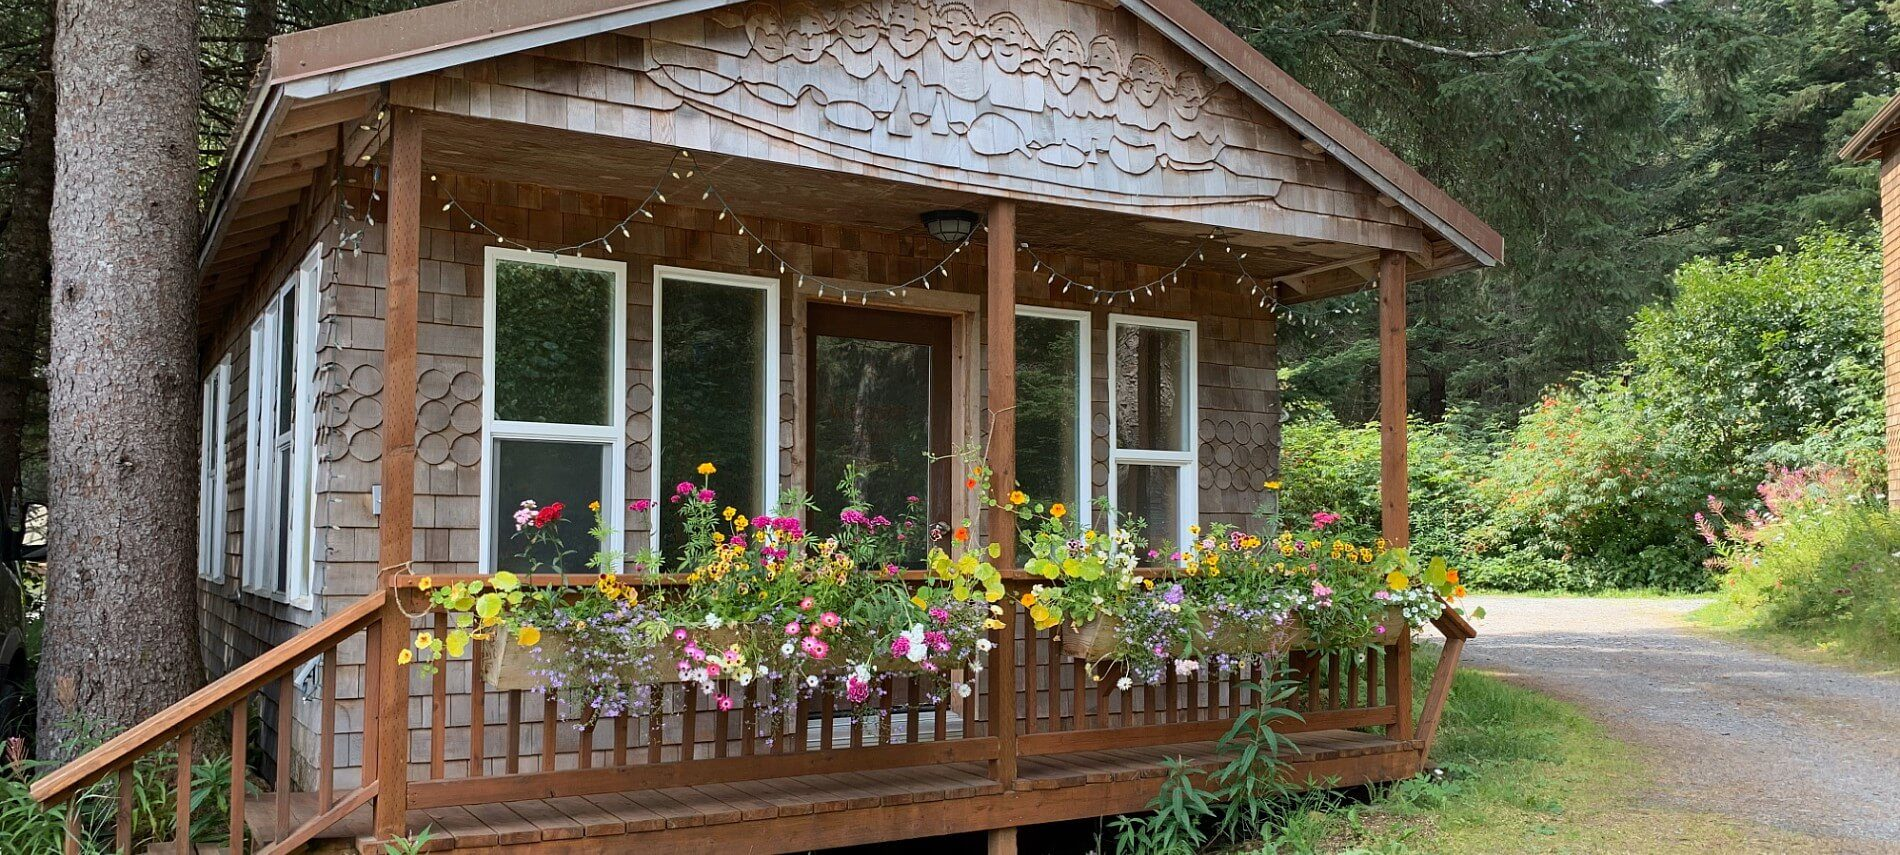 Cute brown cabin with decorative shingles, flowers on the front porch and woods all around